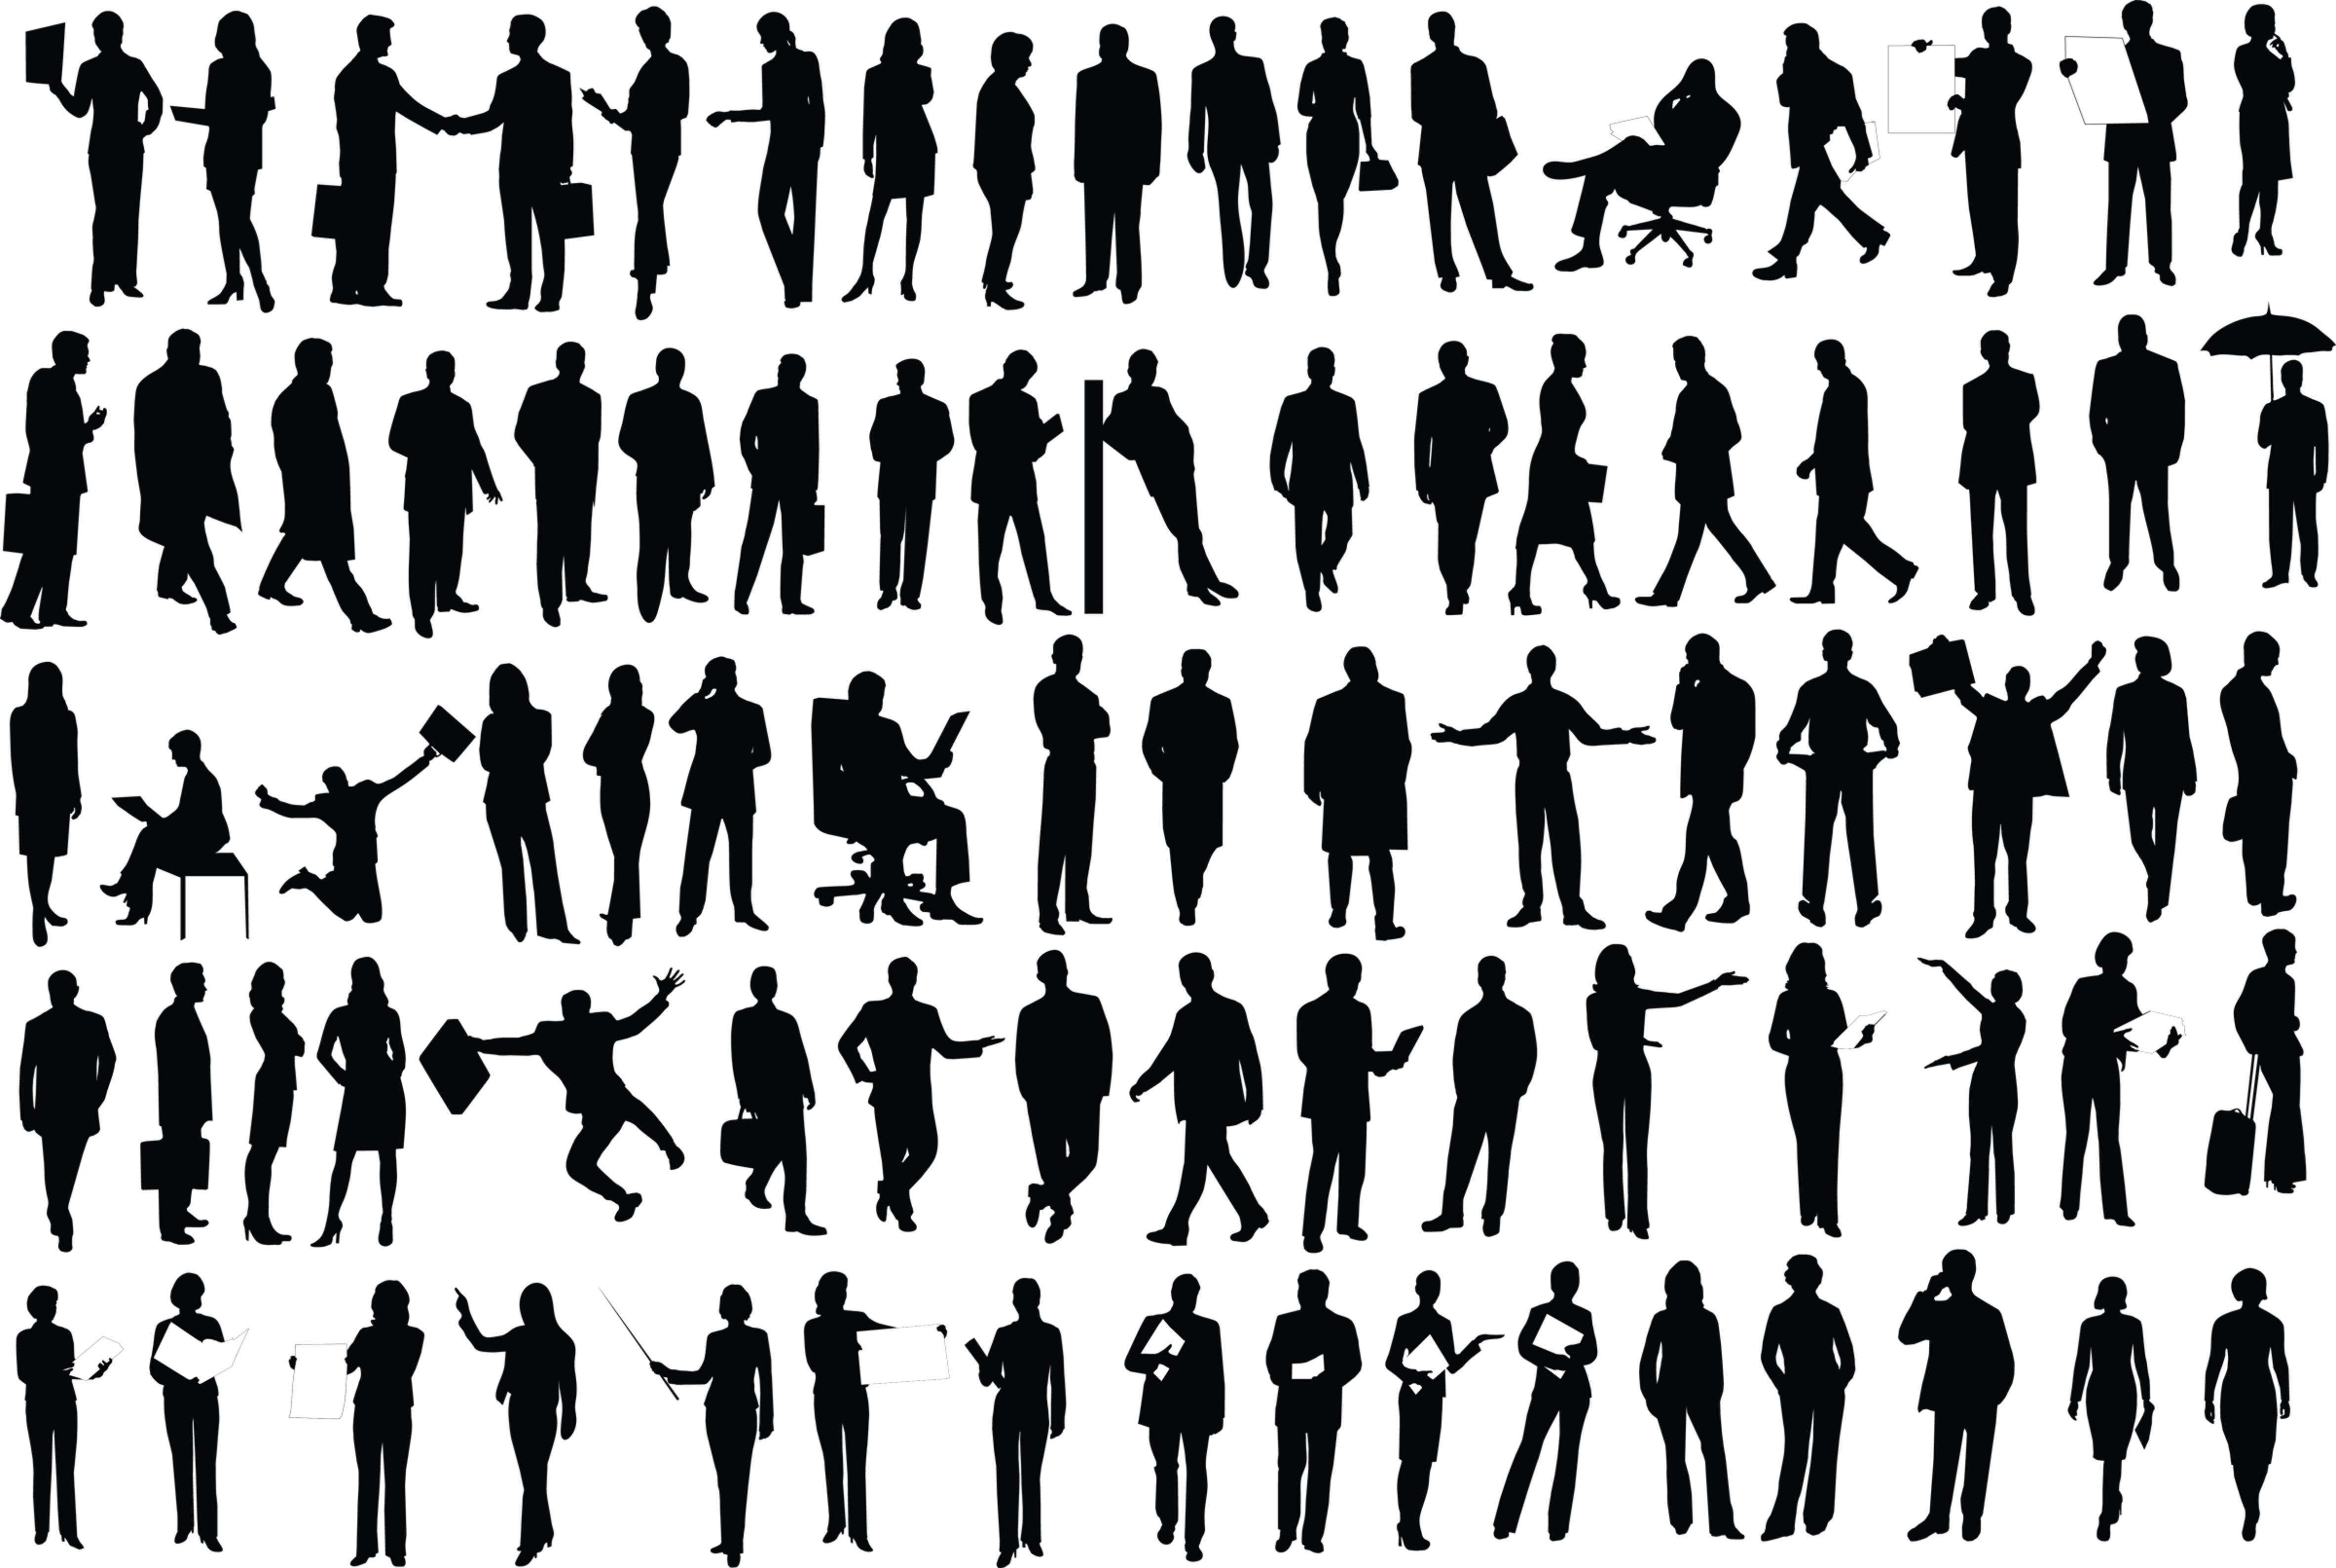 clipart free download What is humoma thesis. Vector band shadow